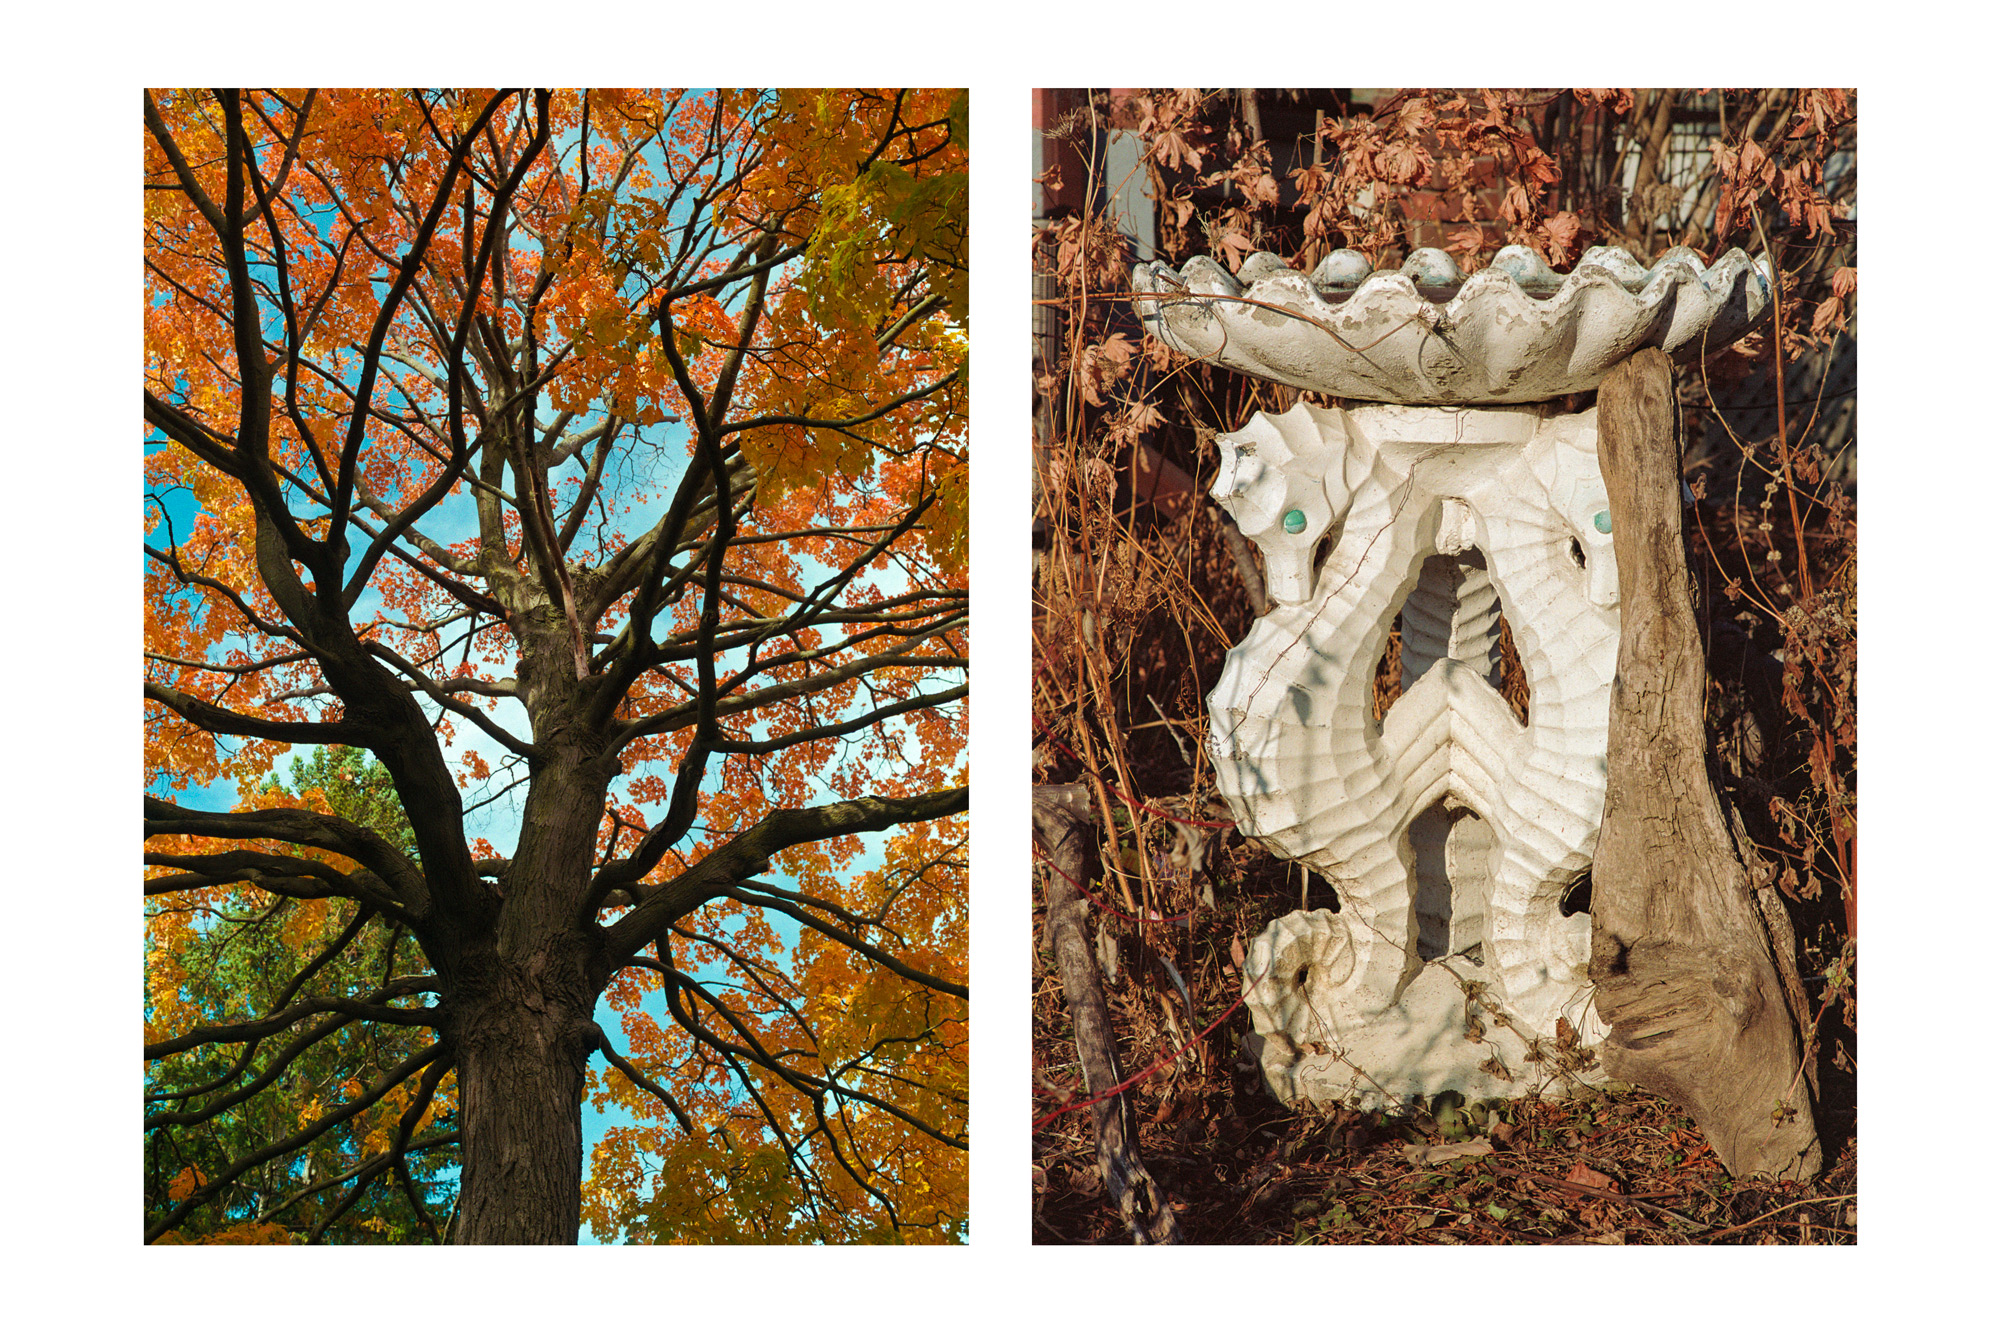 A pair of images, looking up at fall foliage and a bird bath in an overgrown yard.